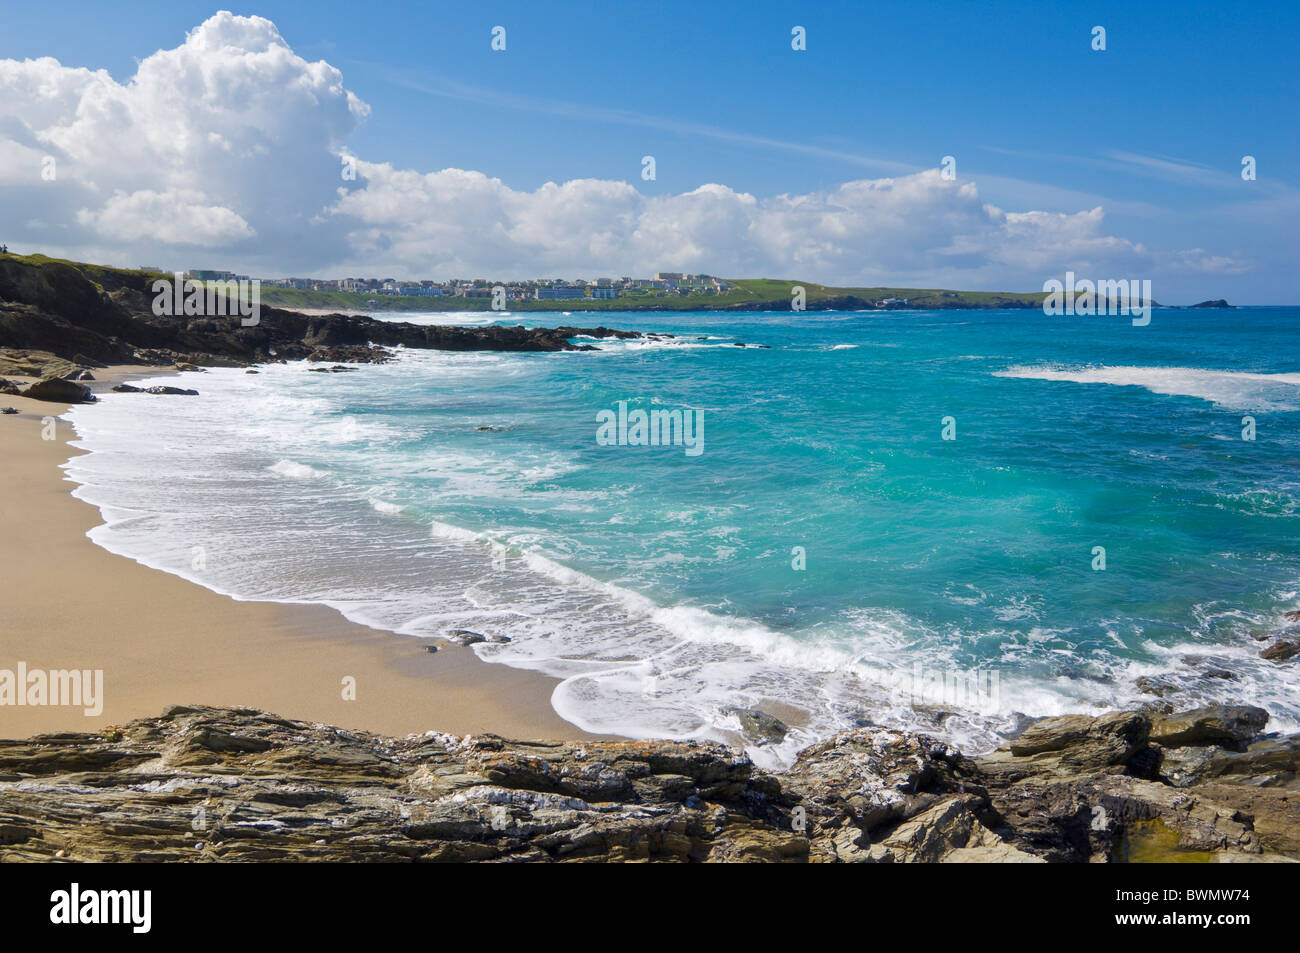 The beach at Towan Head at the northern end of Fistral beach Newquay, Cornwall, England, GB, UK, EU, Europe - Stock Image